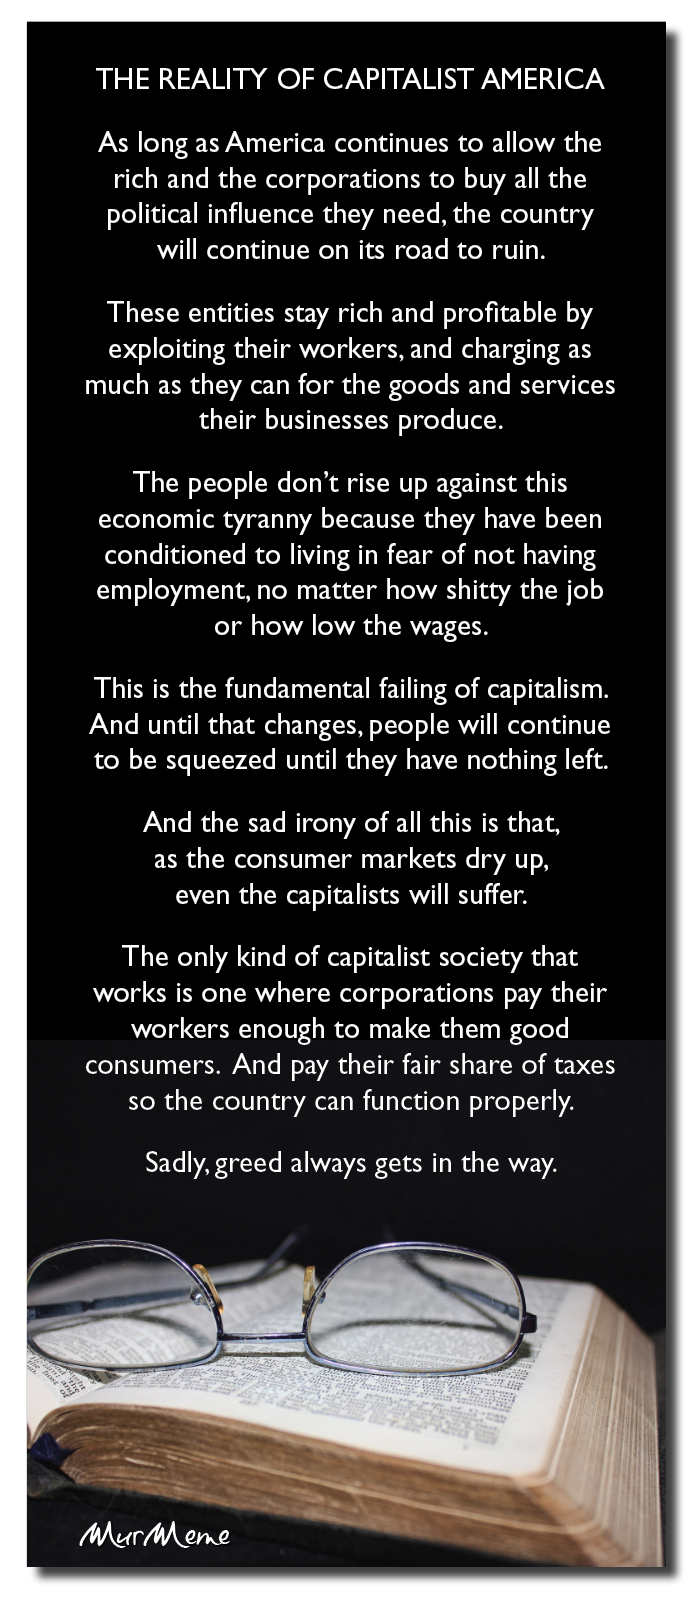 THE REALITY OF CAPITALIST AMERICA  As long as America continues to allow the rich and the corporations to buy all the political influence they need, the country  will continue on its road to ruin.  These entities stay rich and profitable by exploiting their workers, and charging as much as they can for the goods and services their businesses produce.  The people don't rise up against this economic tyranny because they have been conditioned to living in fear of not having employment, no matter how shitty the job  or how low the wages.  This is the fundamental failing of capitalism. And until that changes, people will continue to be squeezed until they have nothing left.  And the sad irony of all this is that, as the consumer markets dry up, even the capitalists will suffer.  The only kind of capitalist society that works is one where corporations pay their workers enough to make them good consumers. And pay their fair share of taxes so the country can function properly.  Sadly, greed always gets in the way.